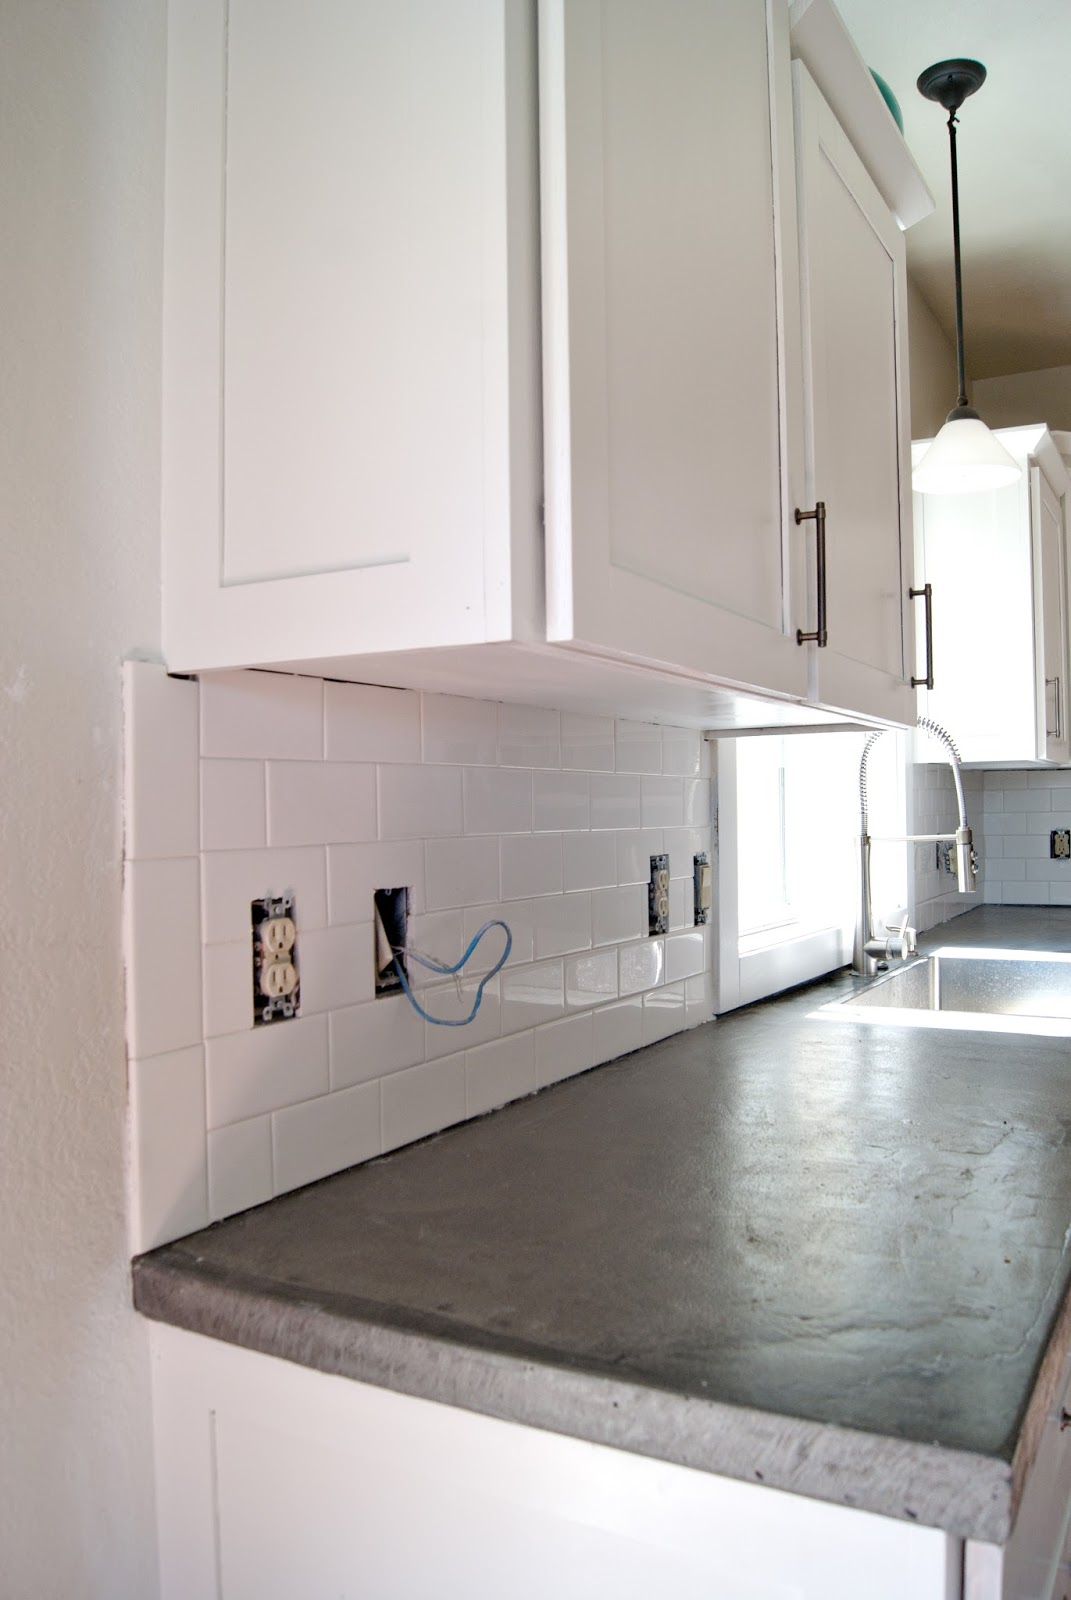 Subway tile installation tips on grouting with fusion pro next doublecrazyfo Choice Image